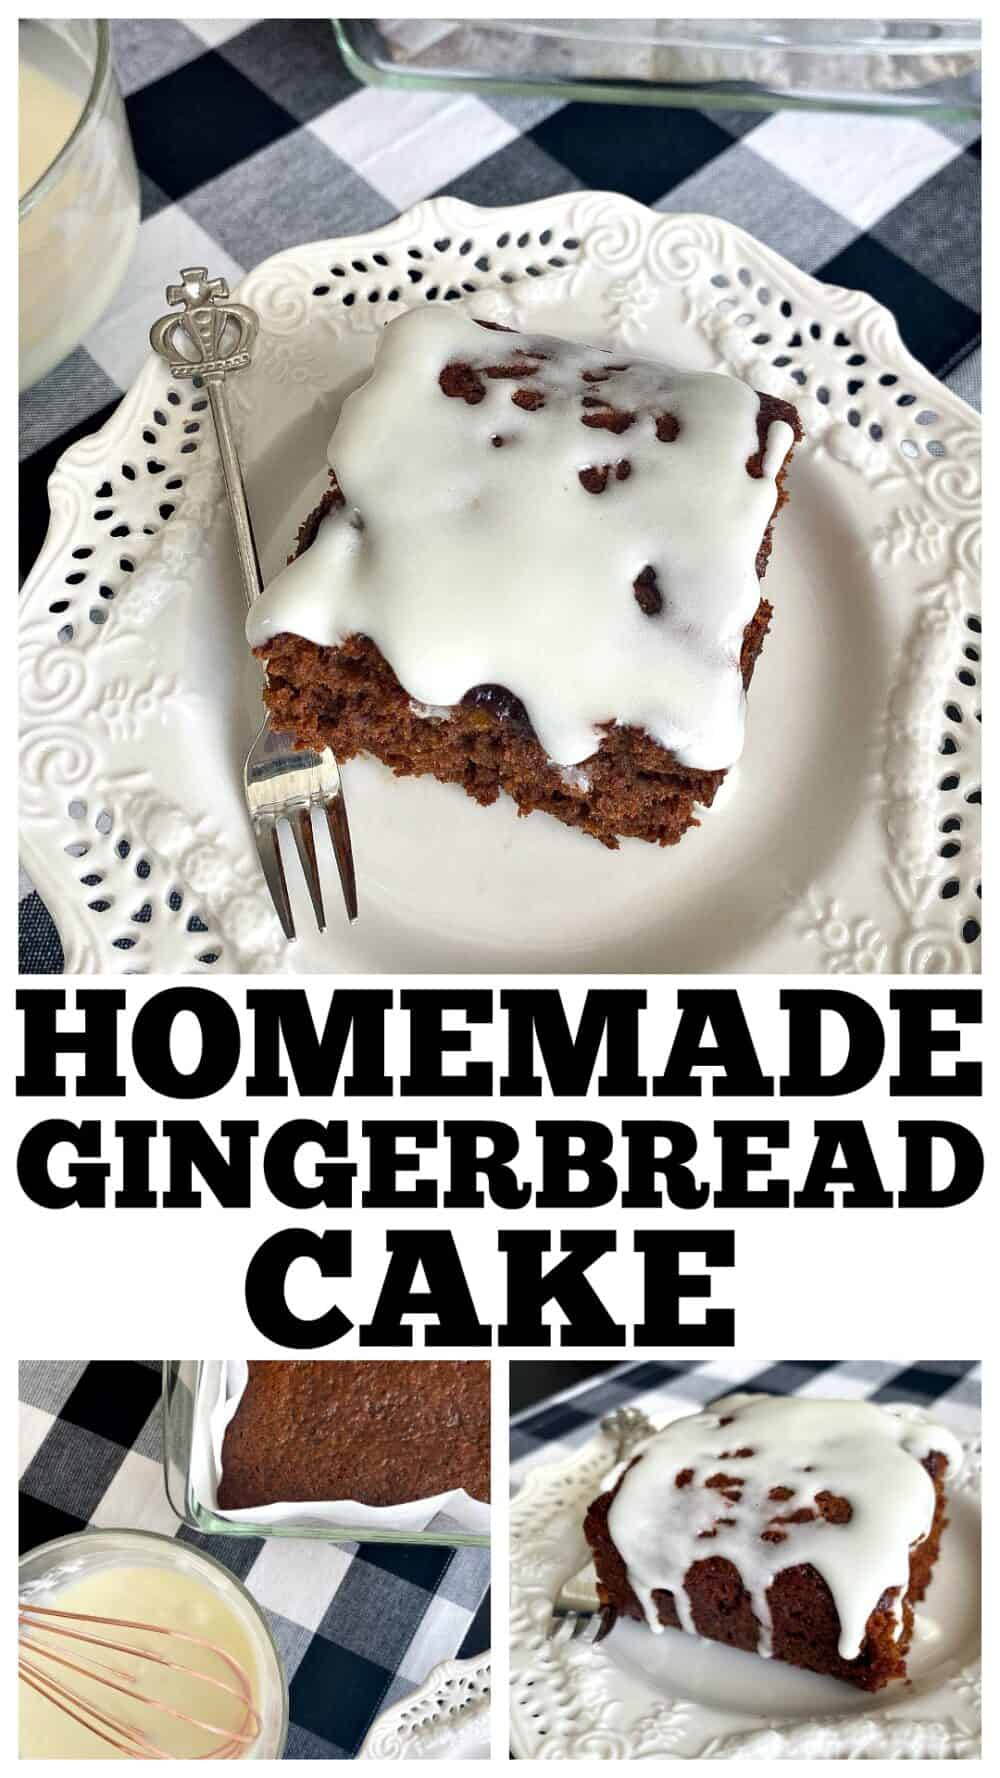 photo collage of gingerbread cake